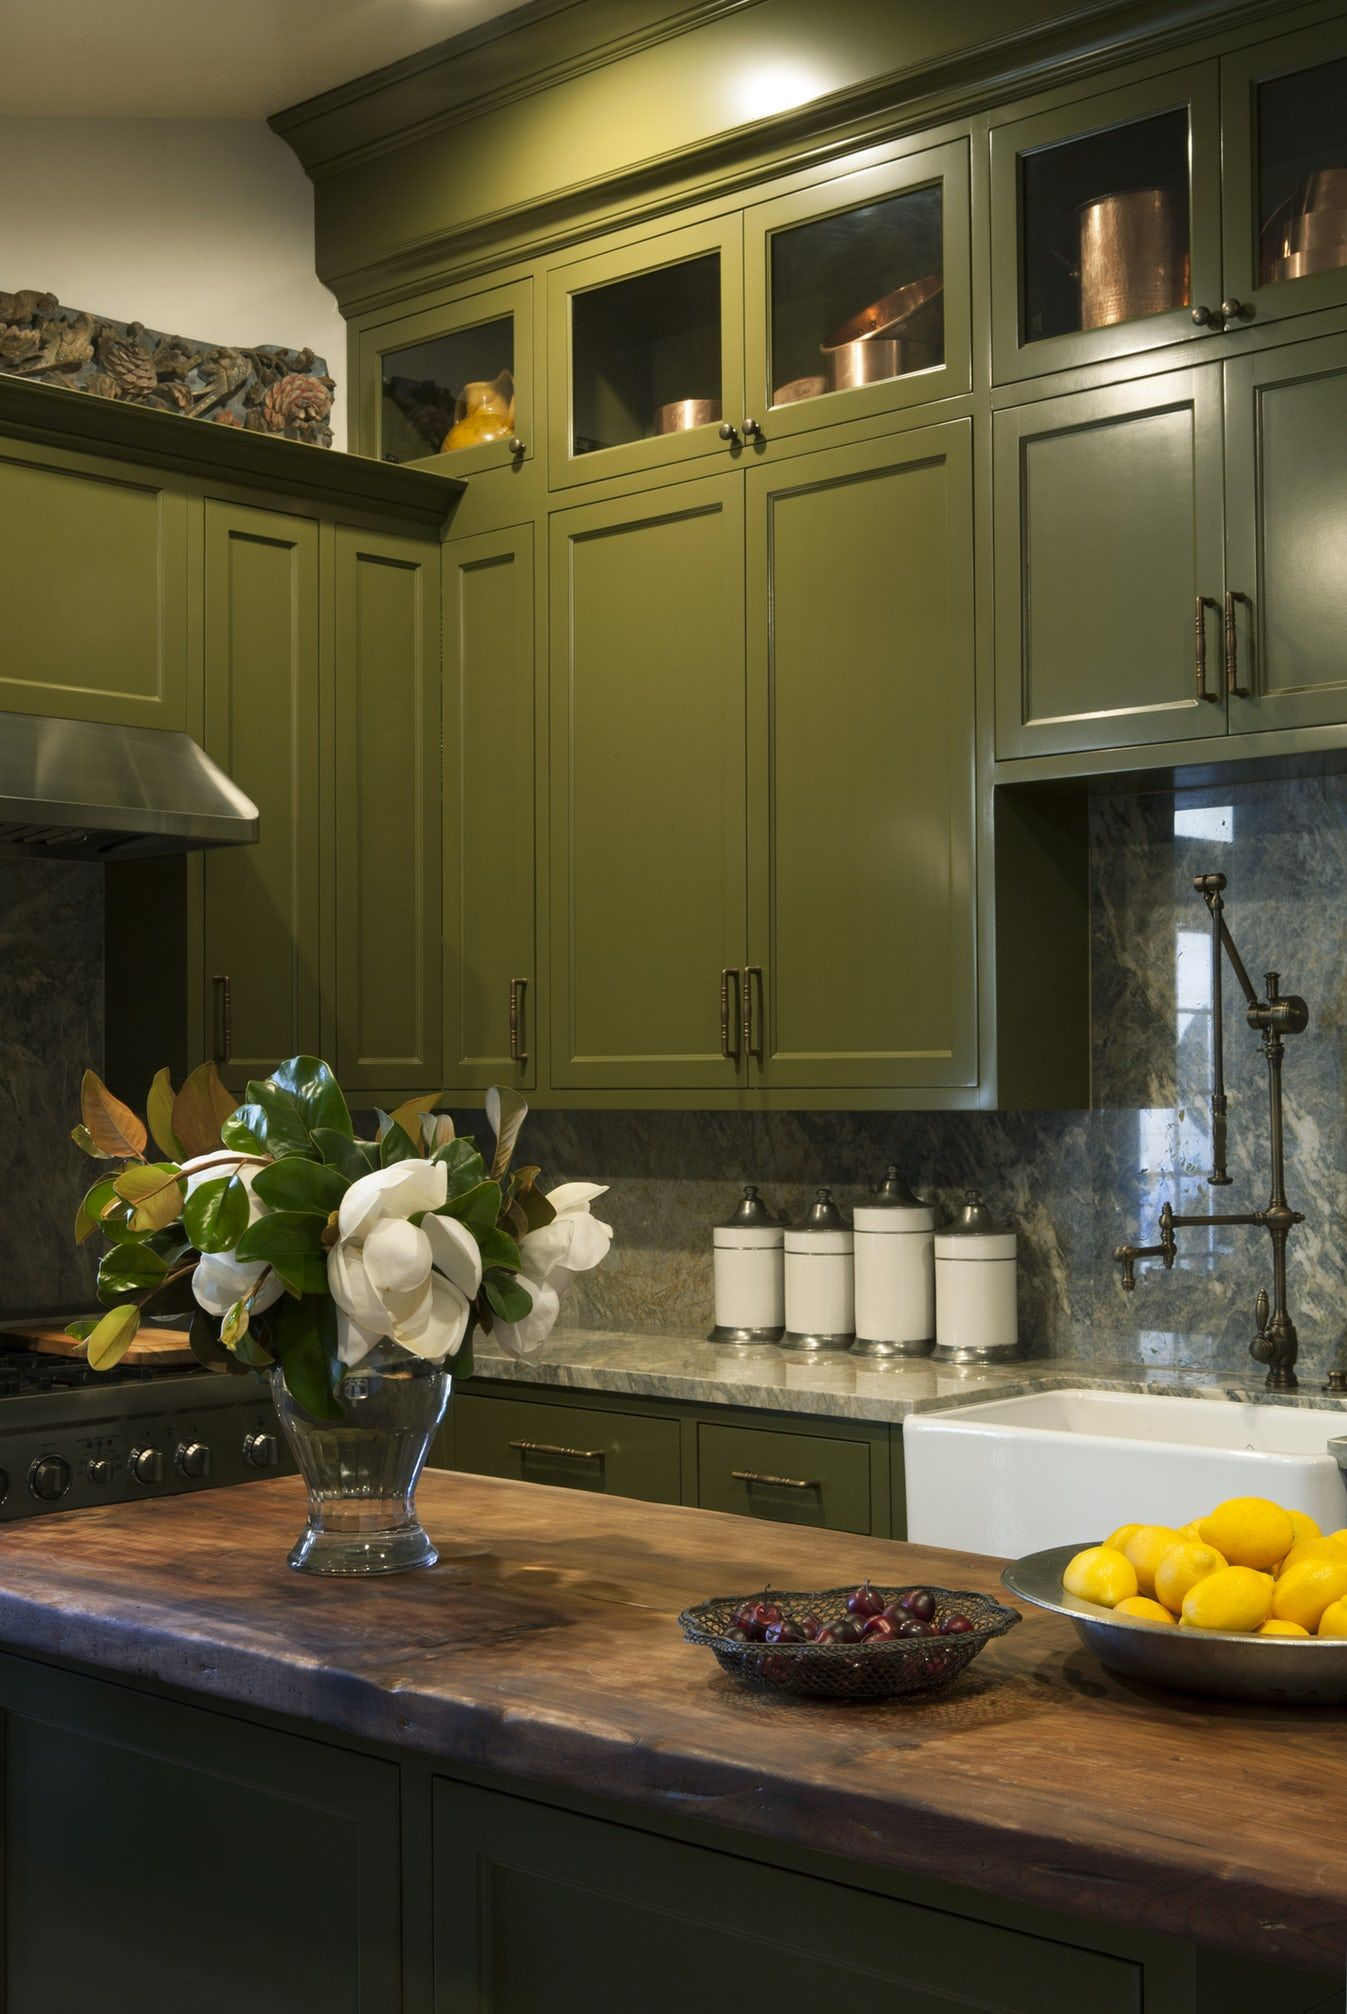 Windowless Kitchen With Olive Green Cabinetry By Blythe